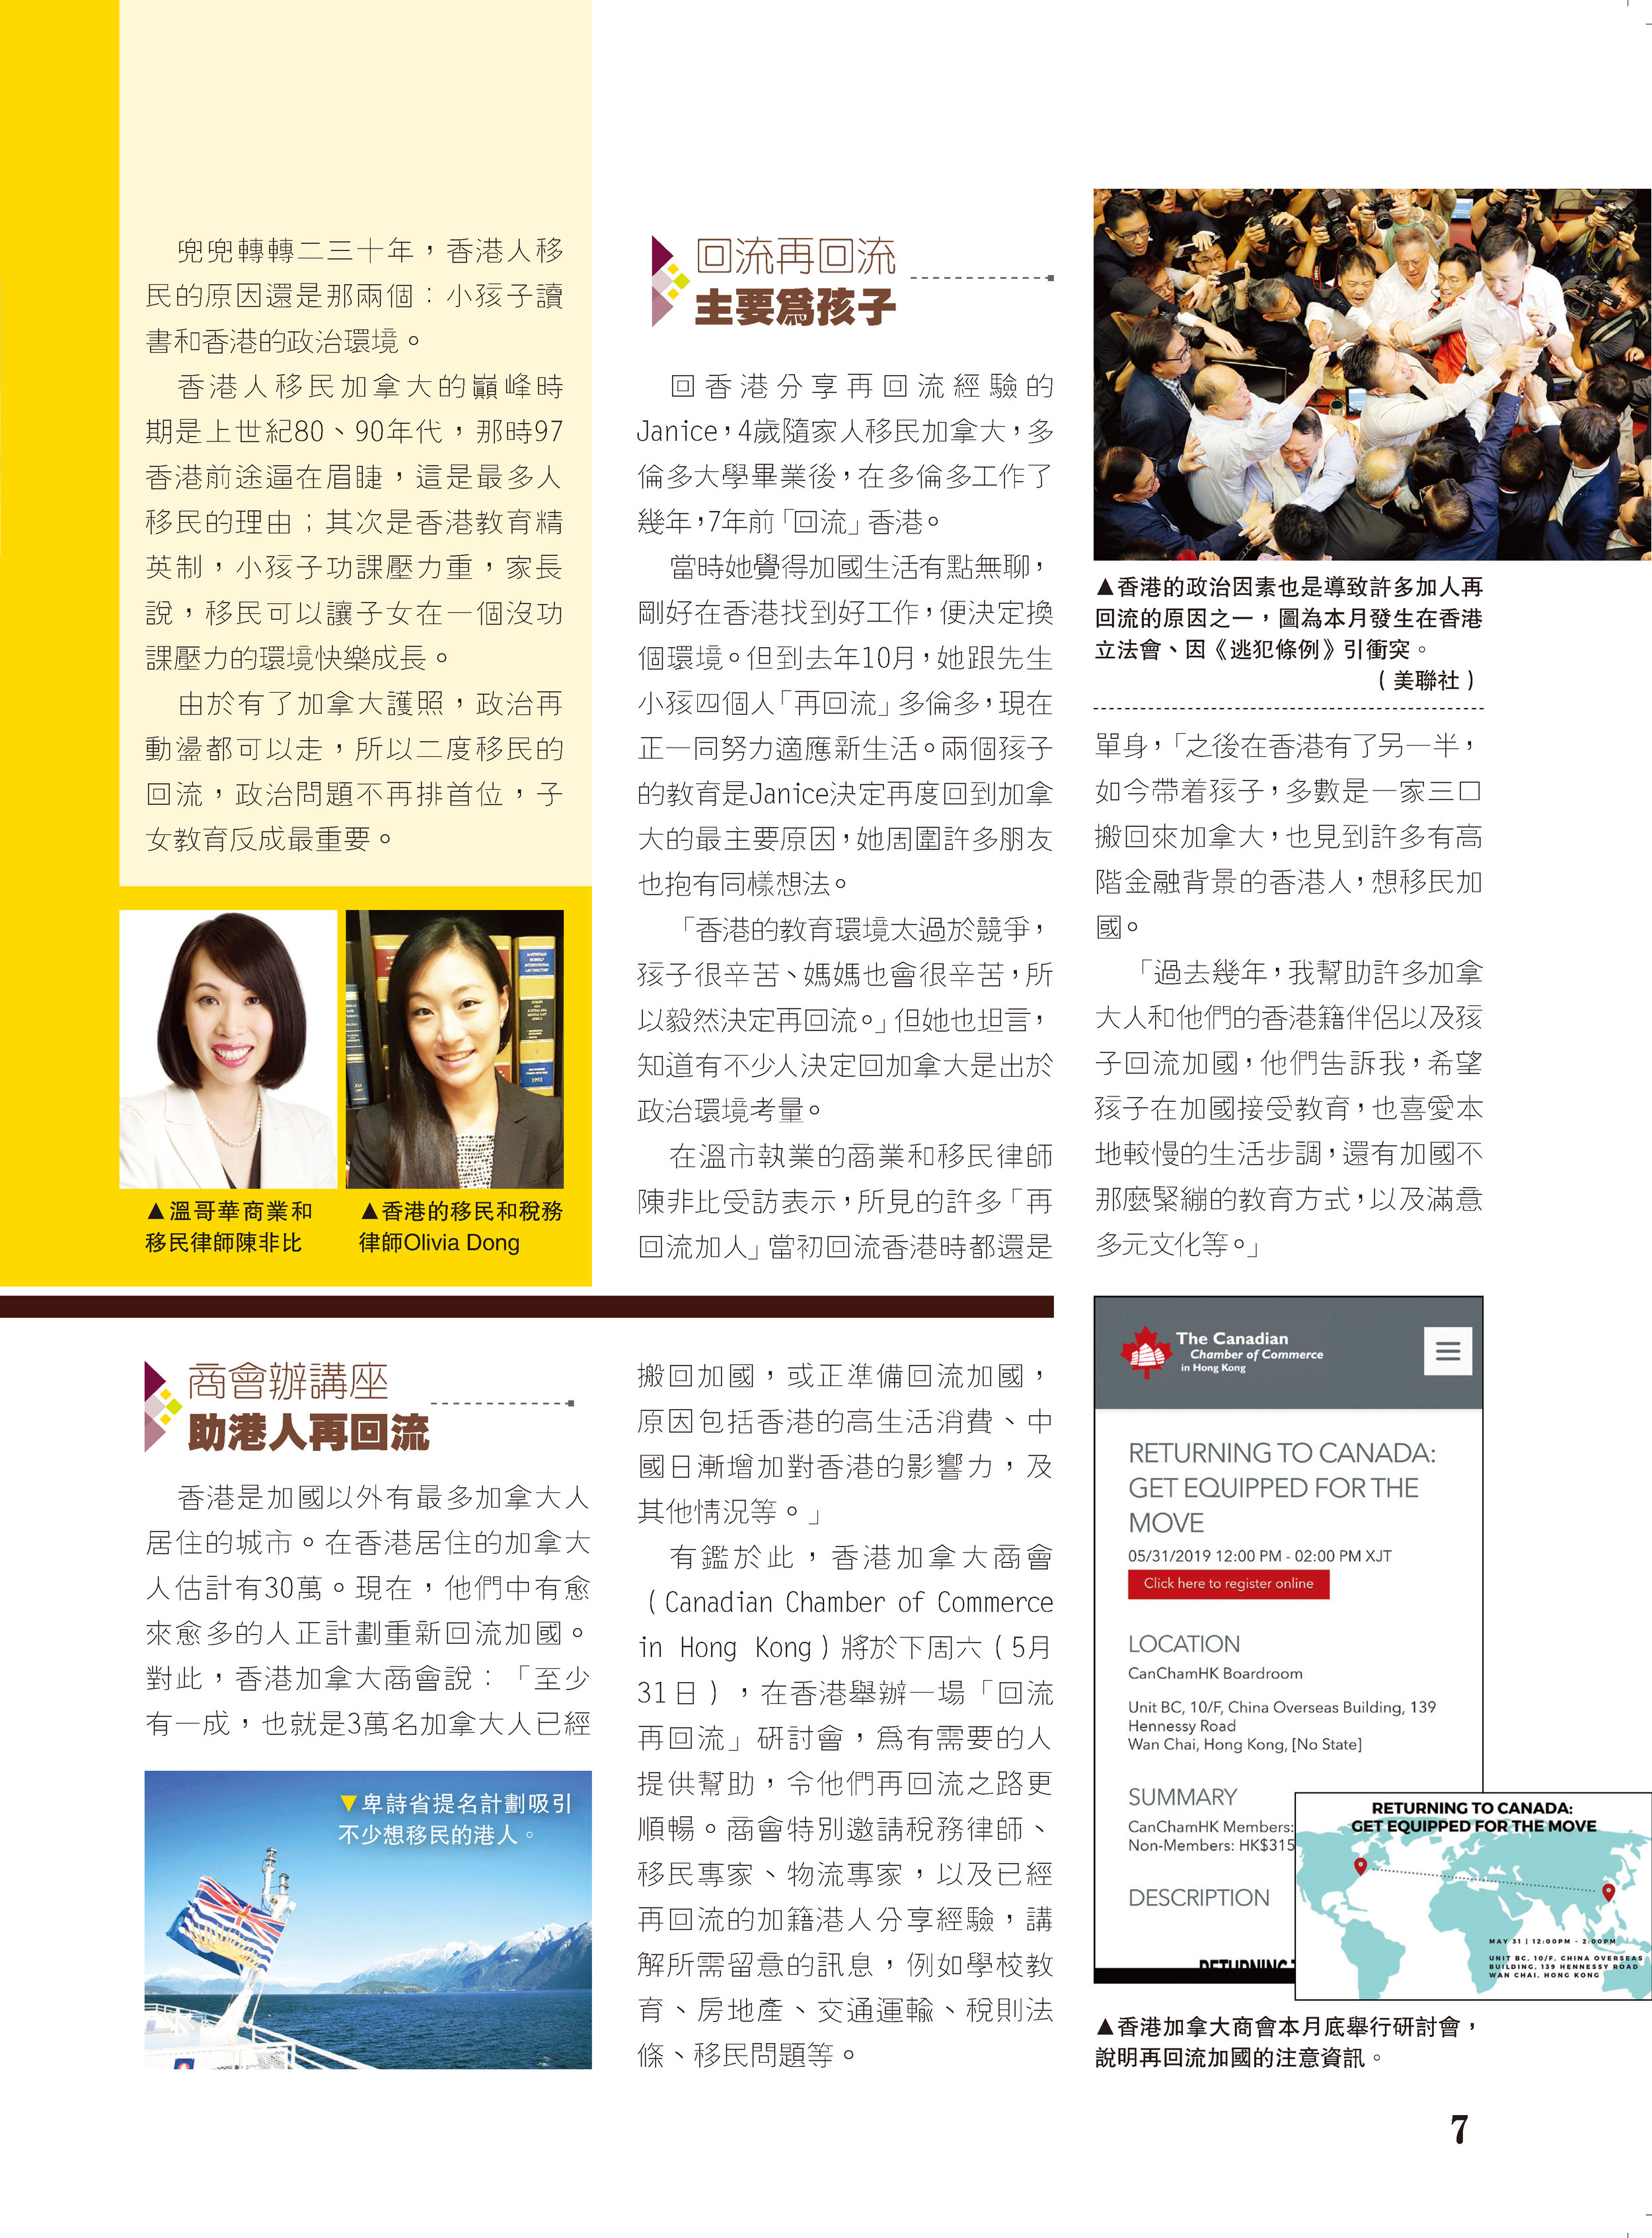 SingTao News Article - Immigrants from Hong Kong_Page_2.jpg